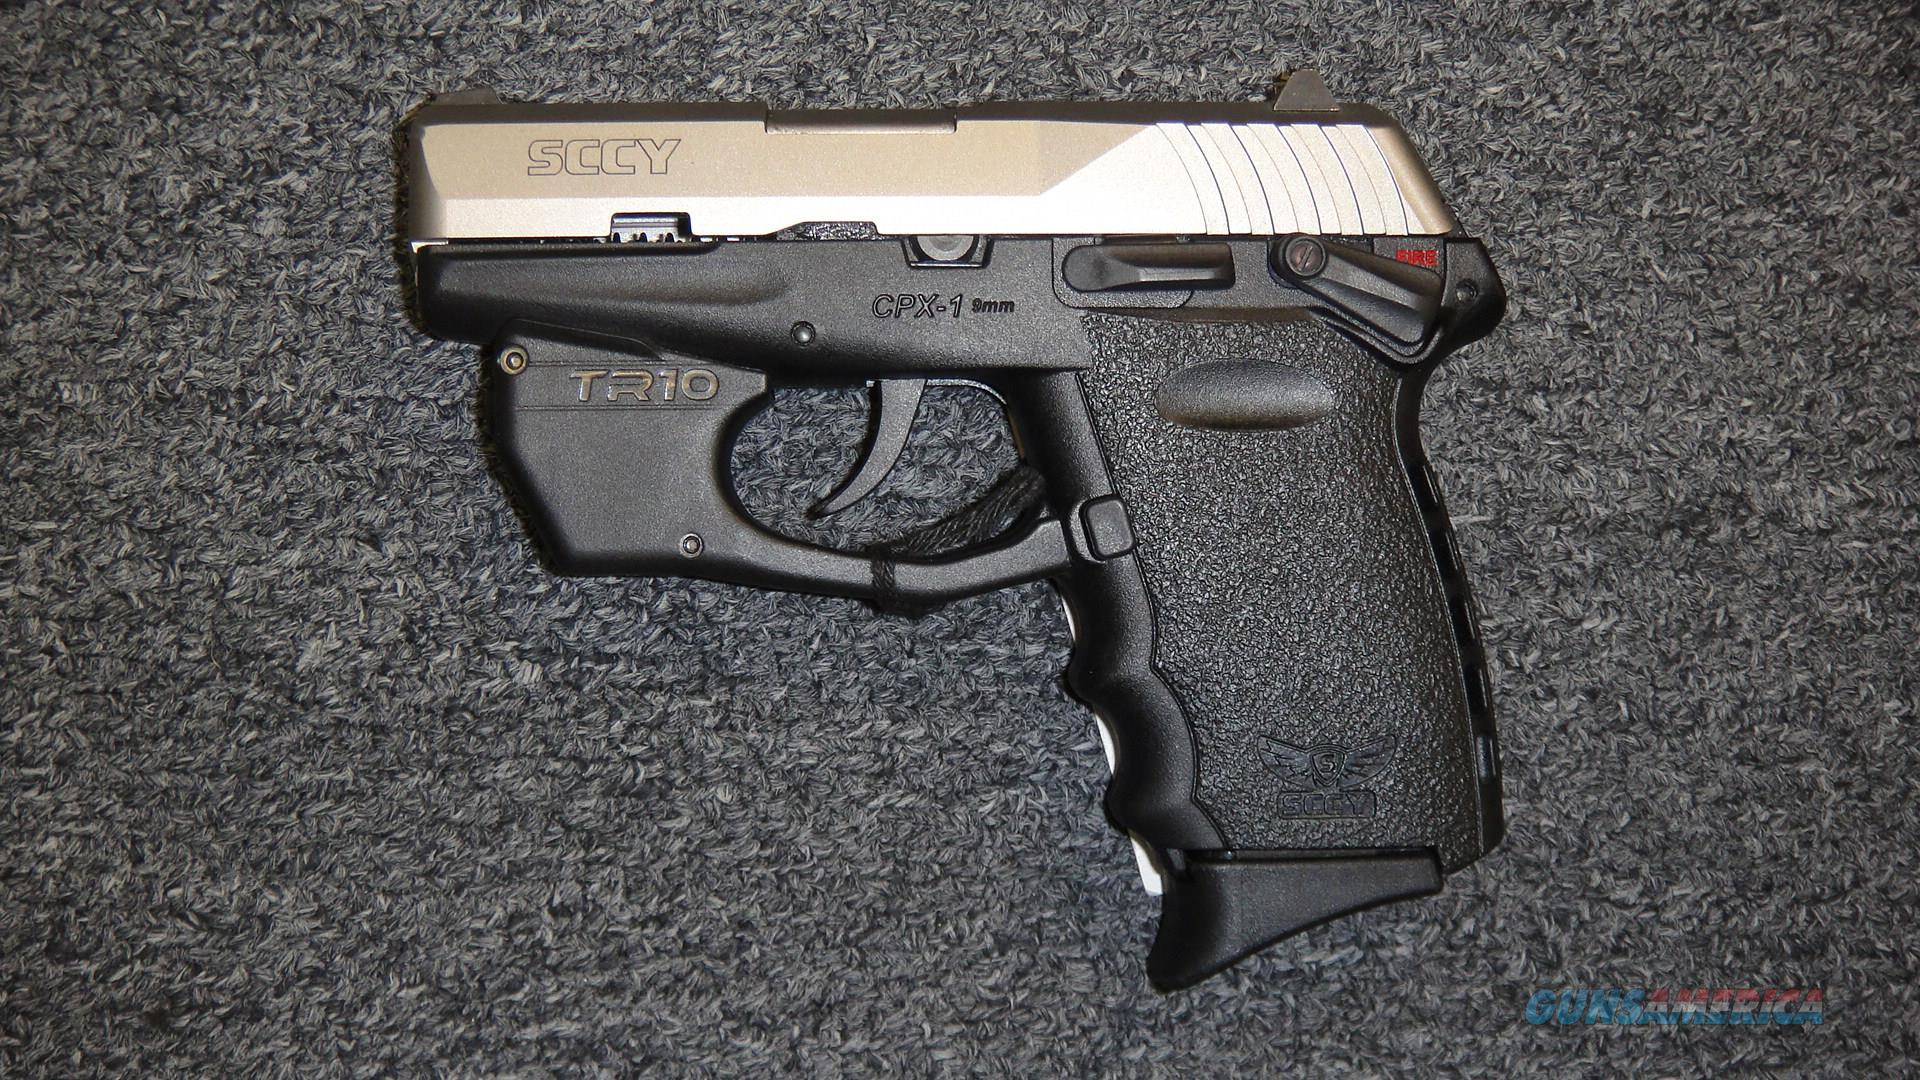 SCCY CPX1 Stainless w/ red laser  Guns > Pistols > SCCY Pistols > CPX1